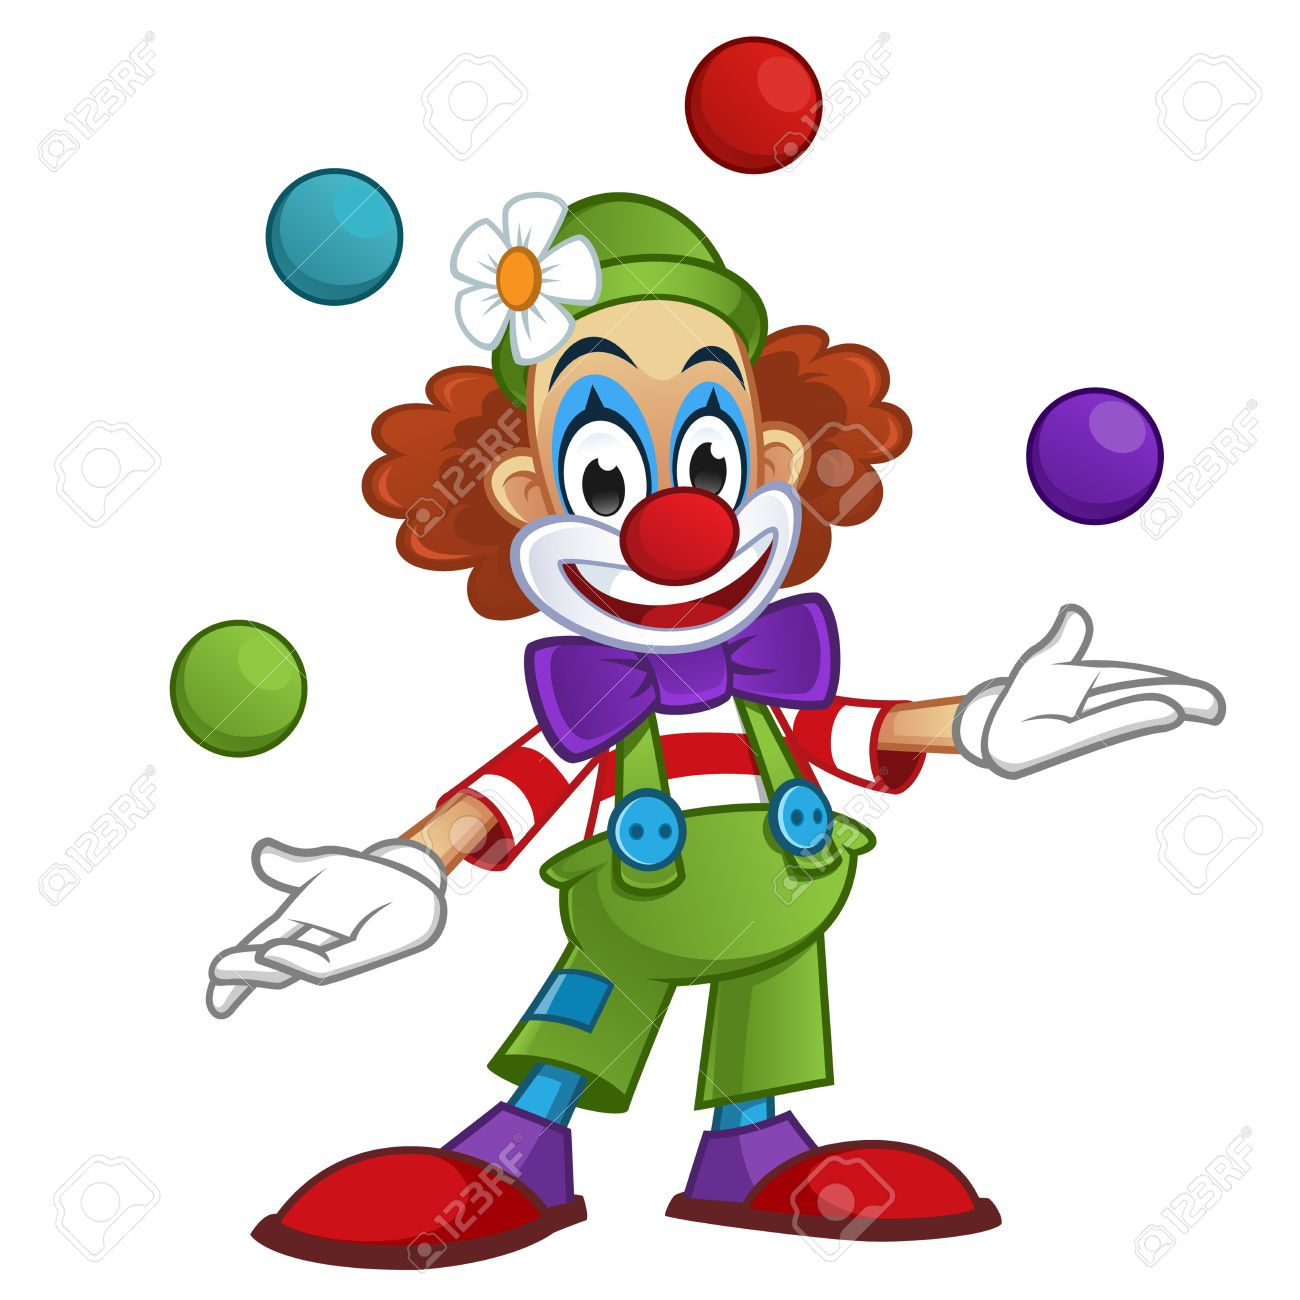 Image Clown man dressed with clothes clown, the clown is playing with balls